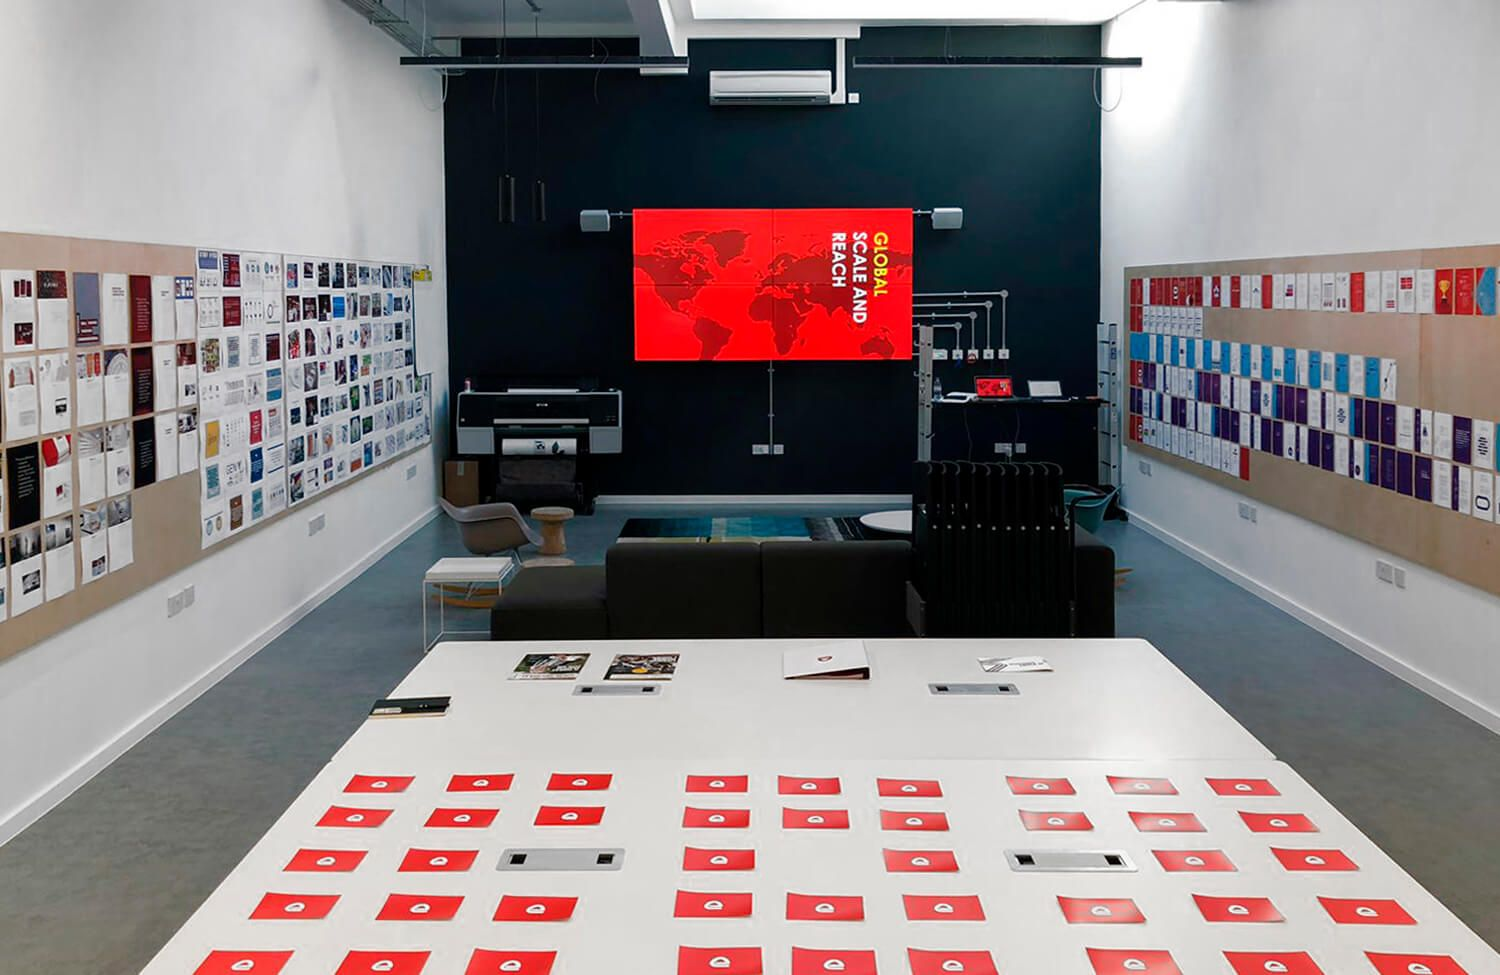 Pope Wainright's studio at an Electrocomponents branding event